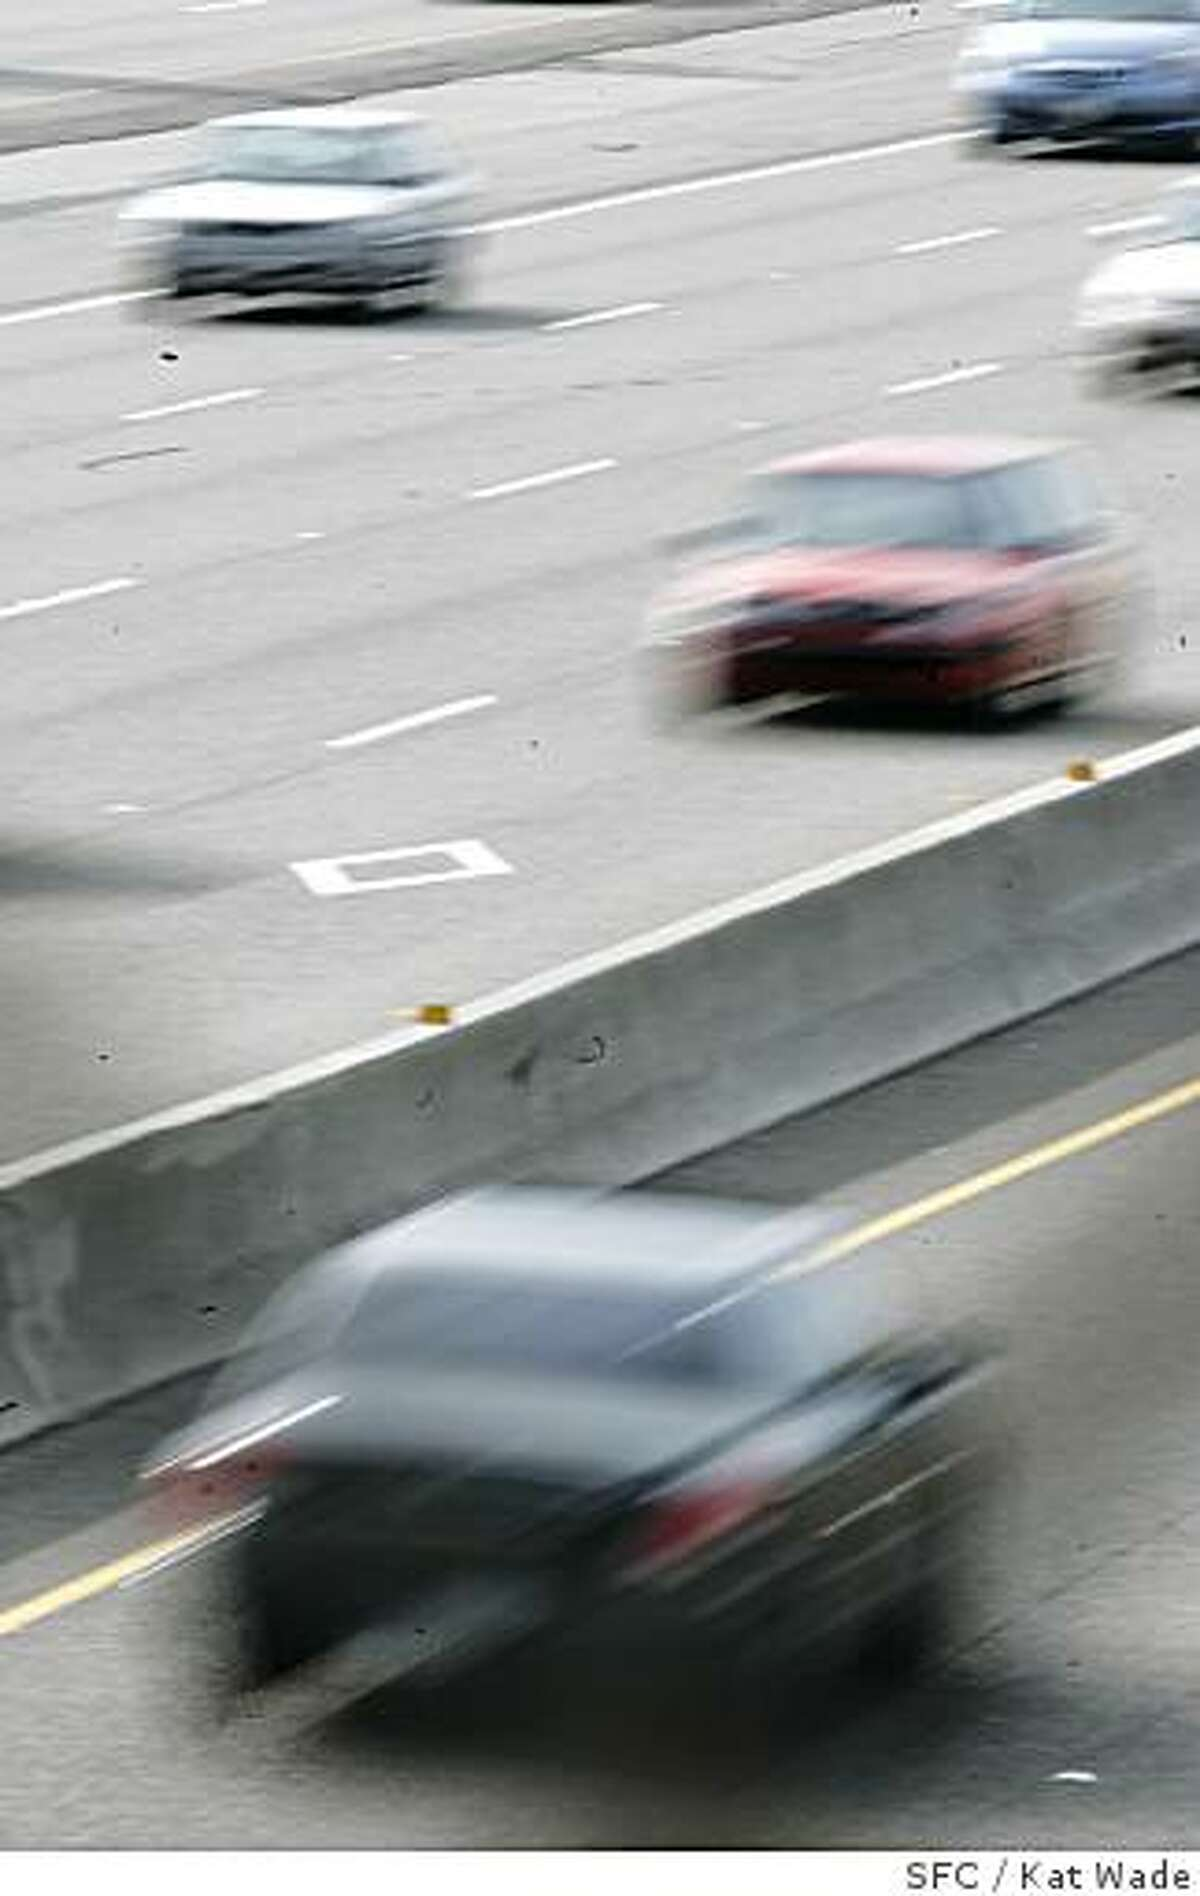 A car pool lane violator travels south on highway 880 around 5 p.m. on Wednesday April 25, 2007. This stretch of highway requires two people to be in the car from 3pm to 7pm on weekdays. Kat Wade/The Chronicle